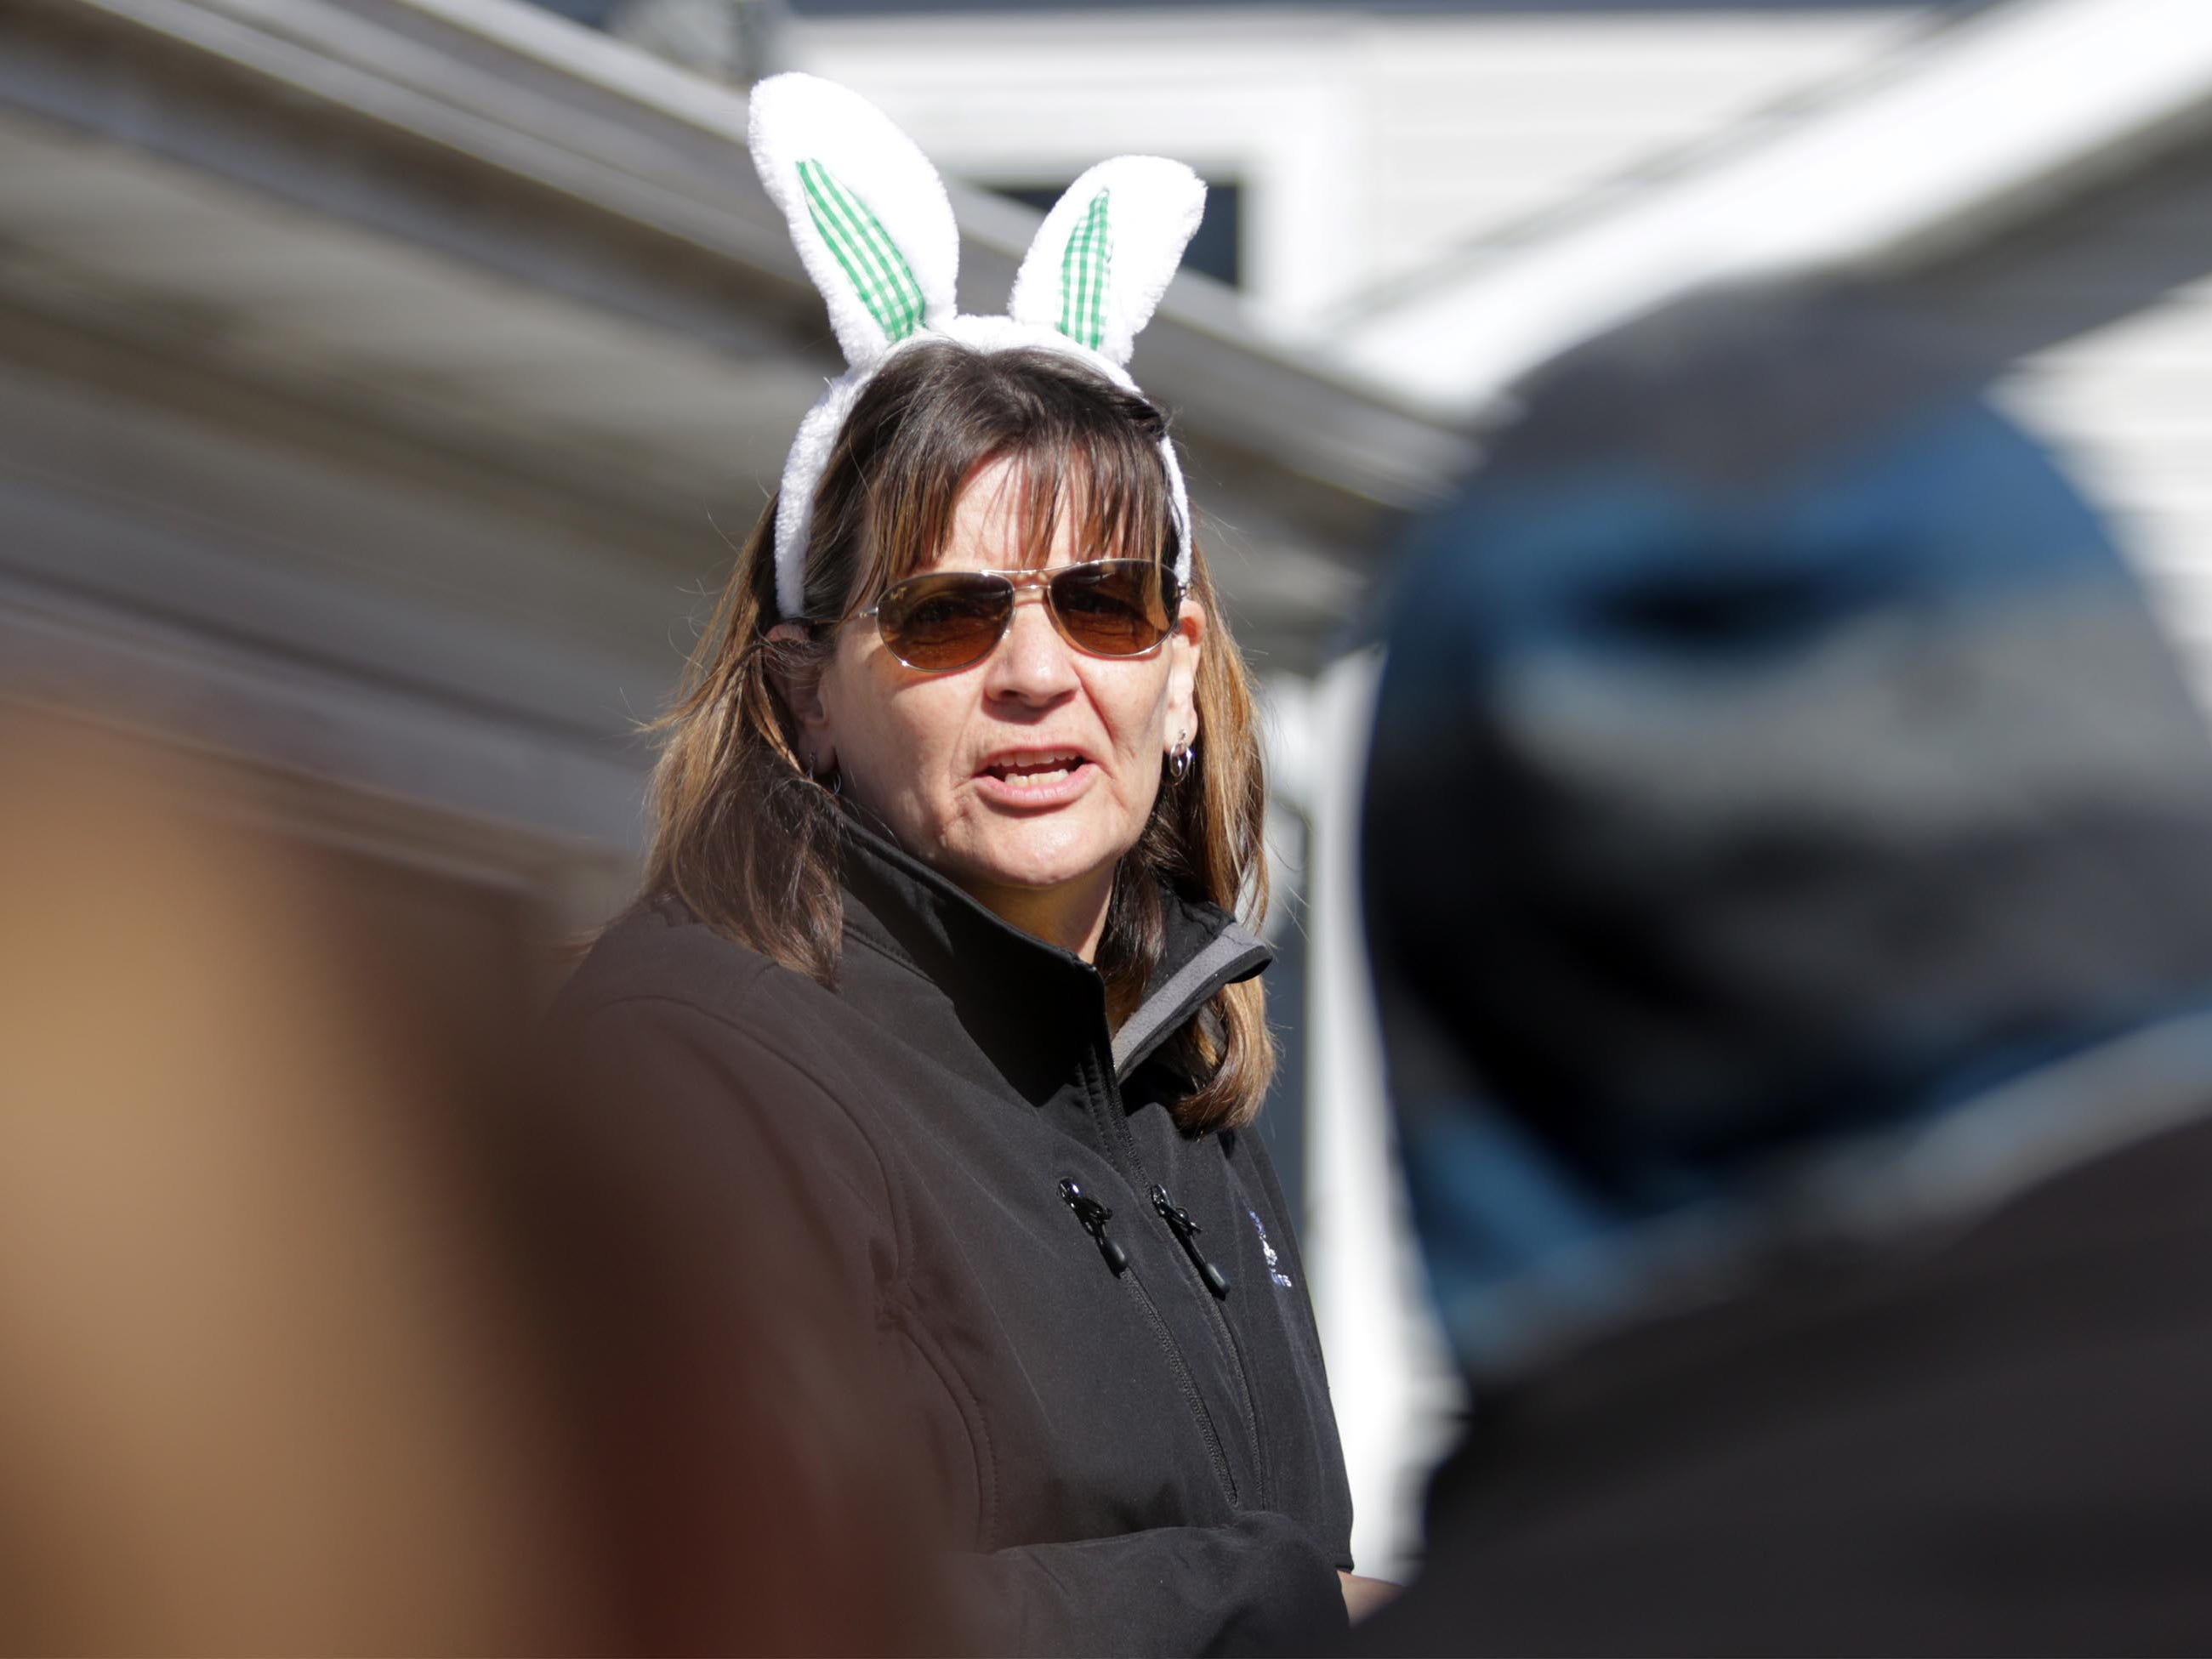 Kathy Hocevar describes the rules beore the start of the annual Hocevar Easter Egg Hunt, Saturday, April 20, 2019, in Sheboygan Falls, Wis.  This years marks 25 years for the Hocevar Family holding an Easter egg hunt at their home, according to Hocevar.